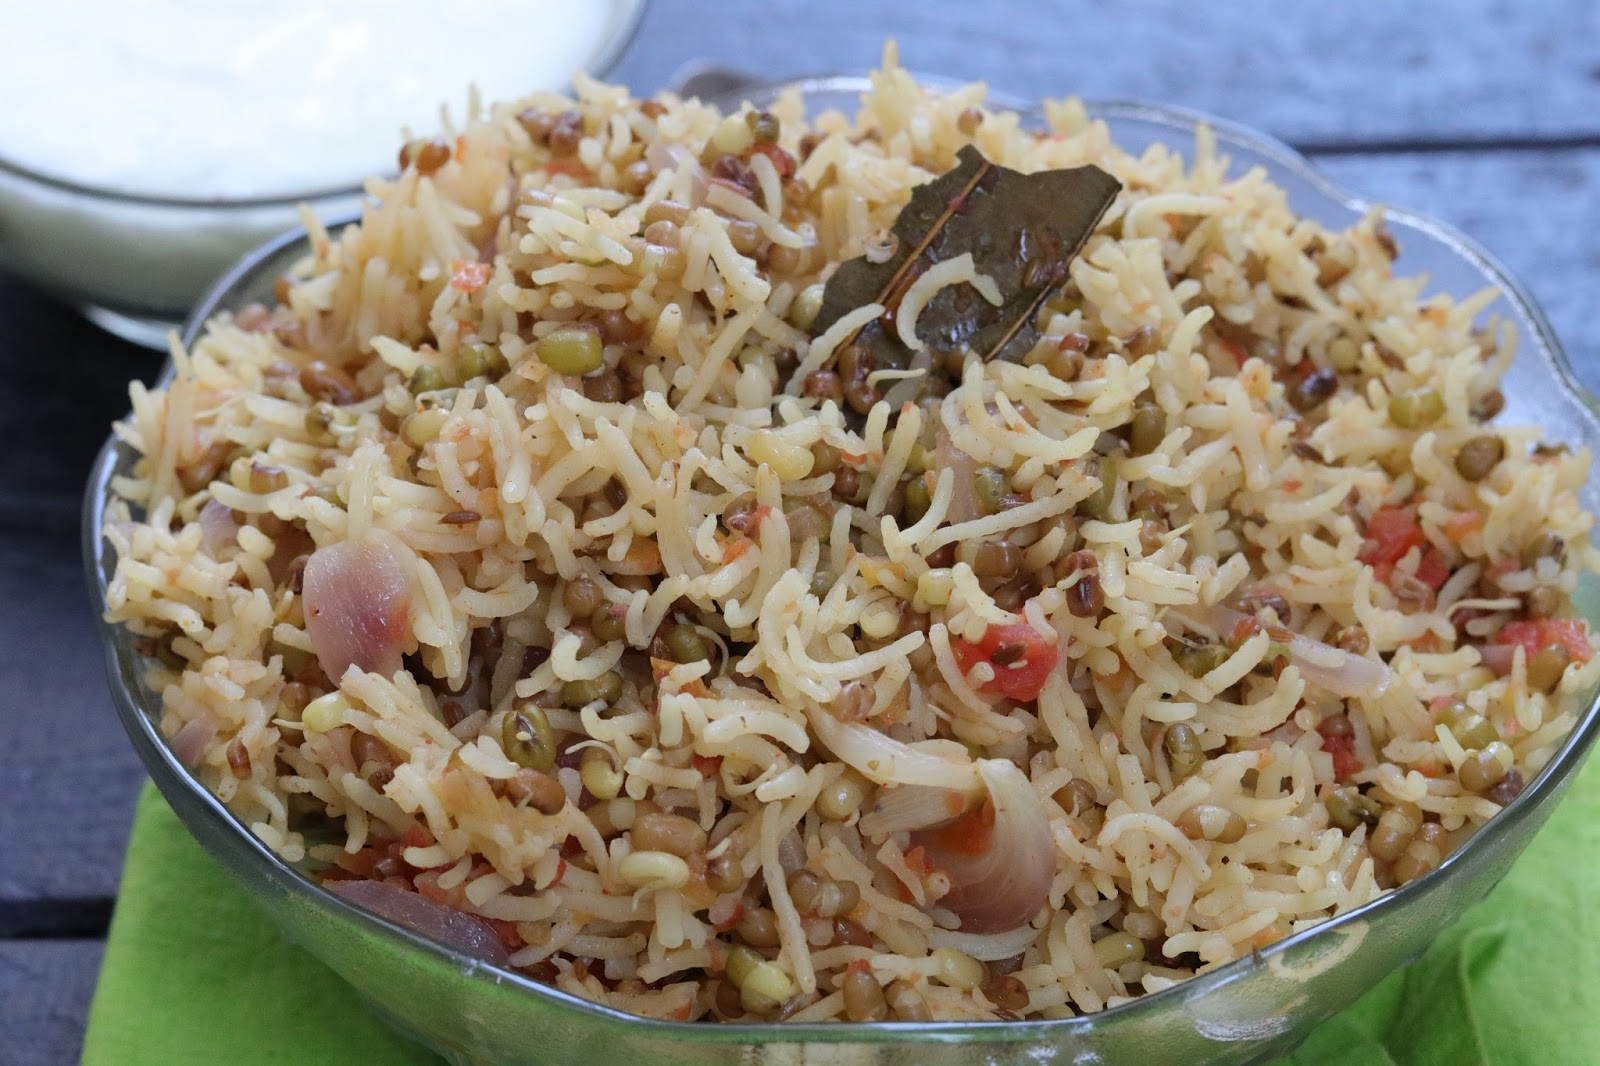 Healthy sprouts pulao in rice cooker healthy kadai see how to make healthy sprouts pulao in rice cooker pulao is a one pot meal a perfect indian dish to serve a main course meal rice cooker recipes are forumfinder Image collections